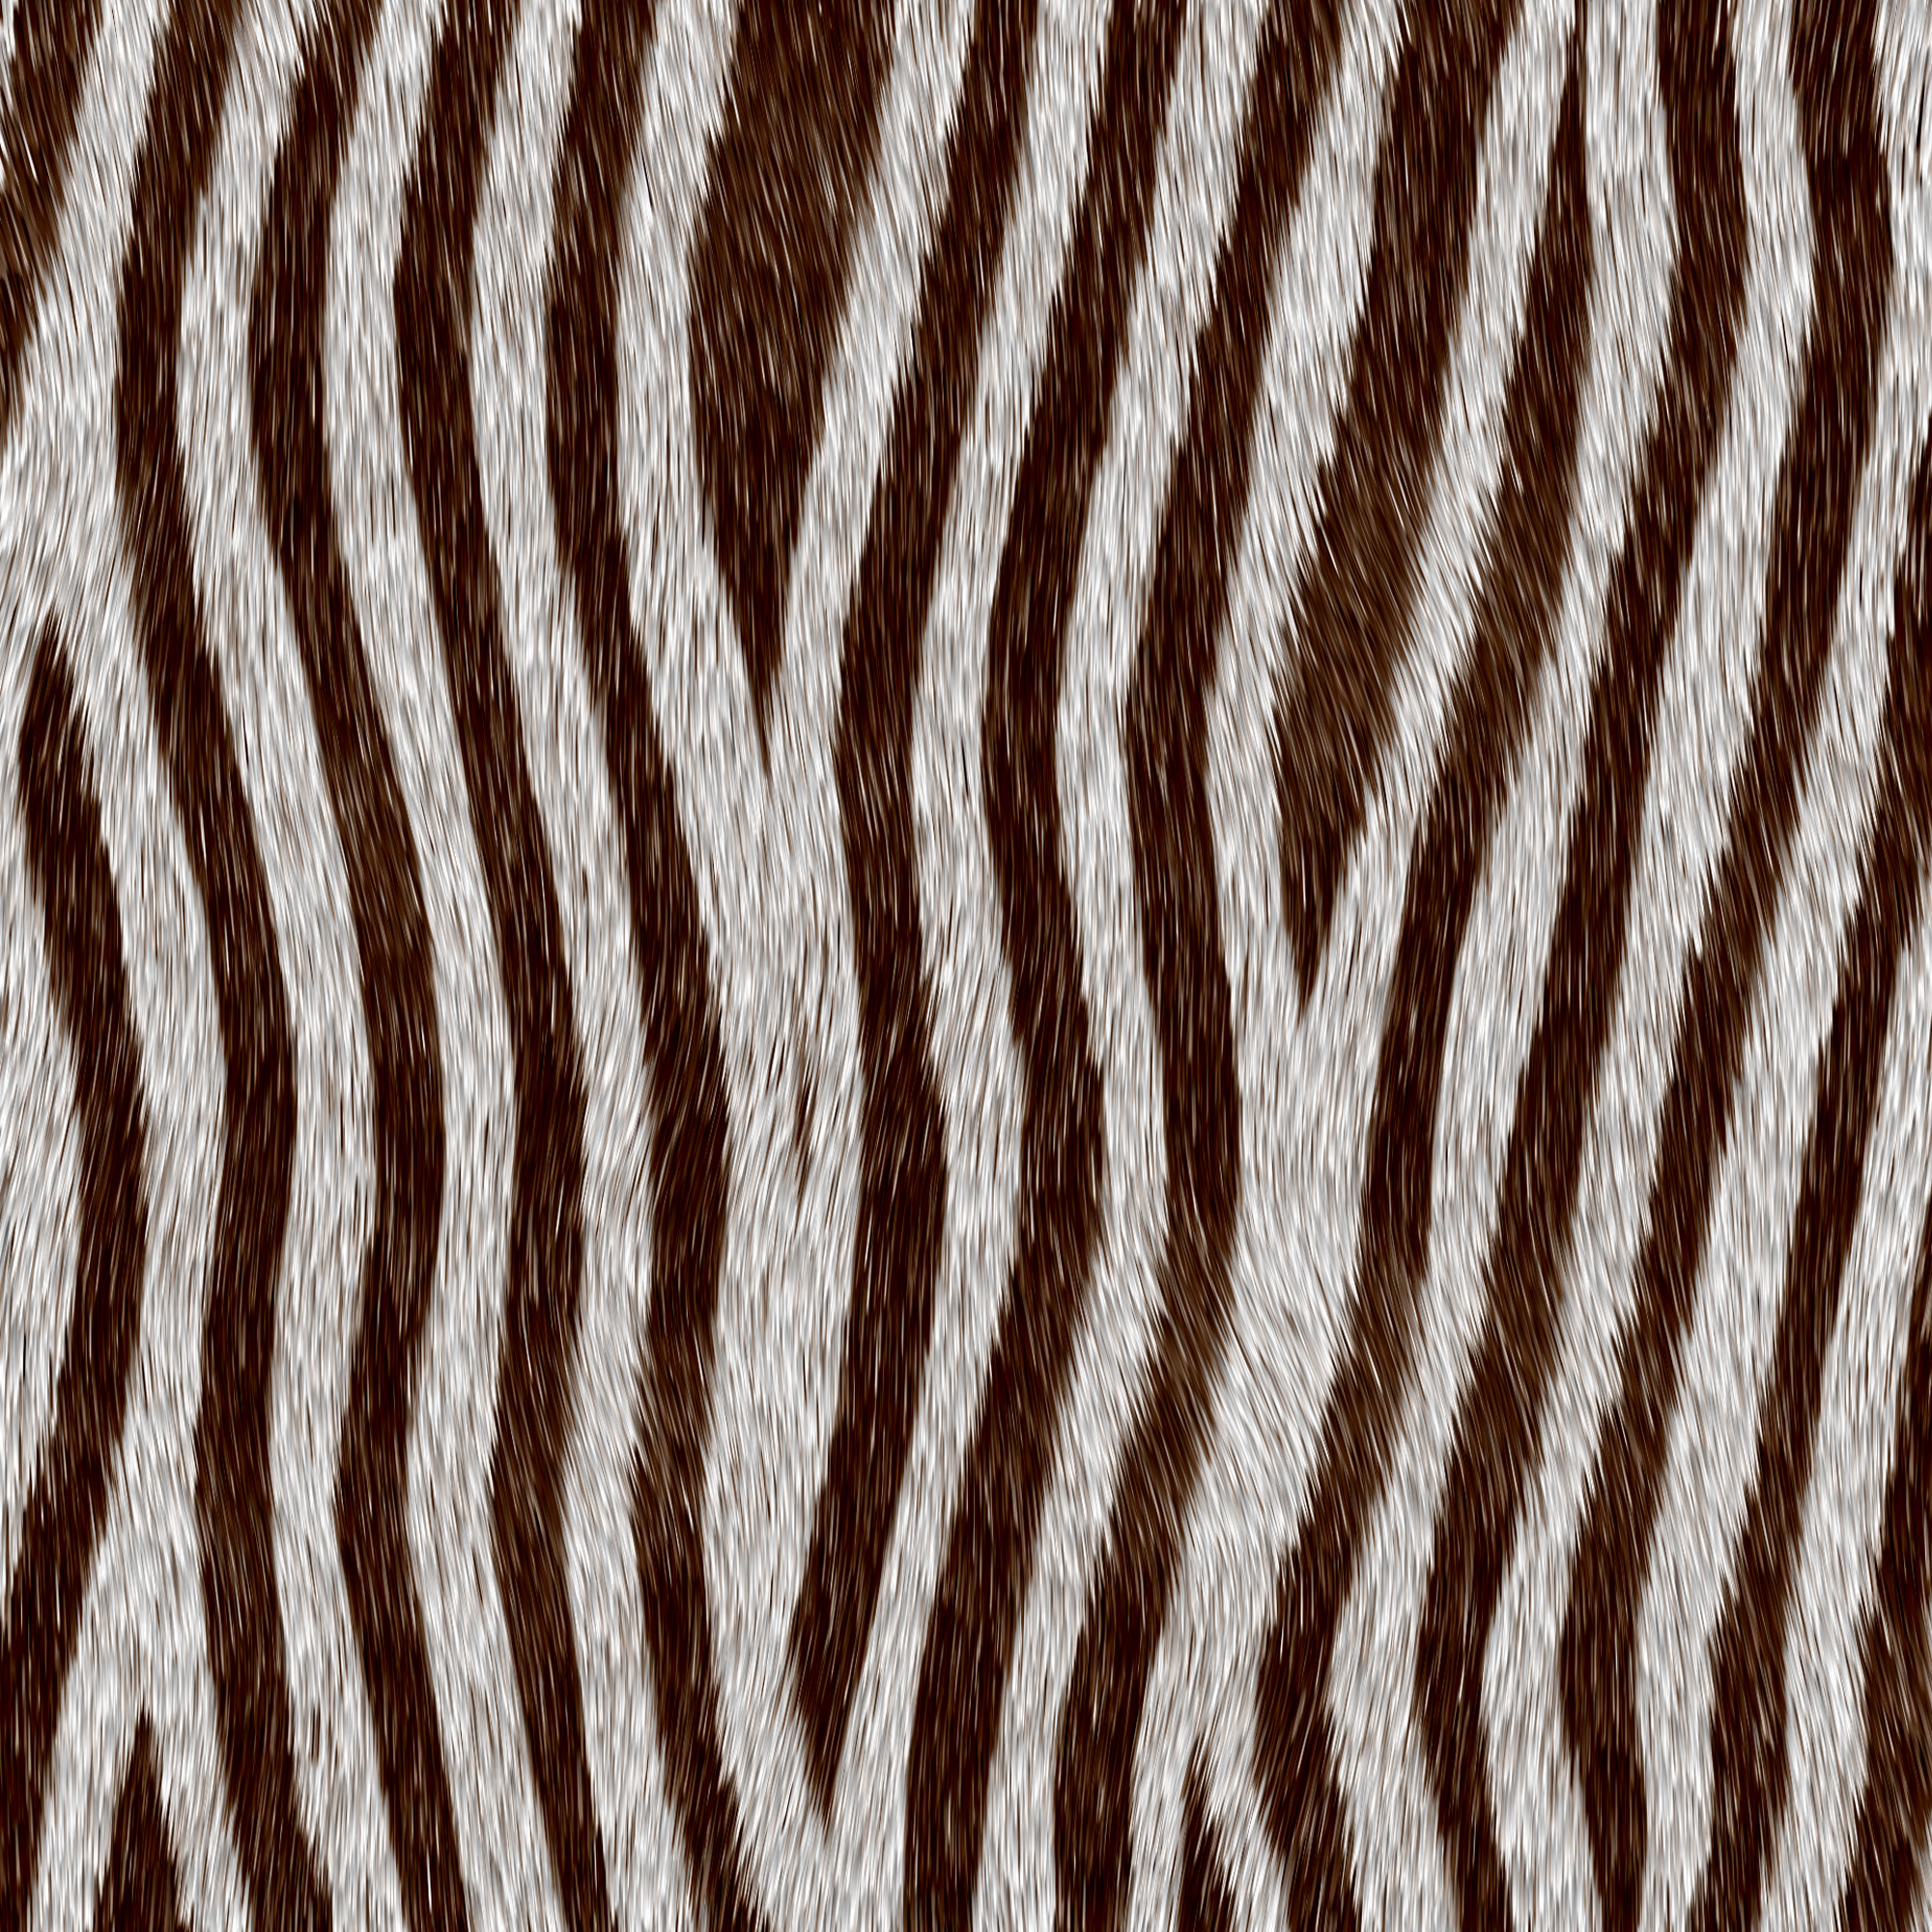 Animal skins, textures, leather, wool, download photos ...